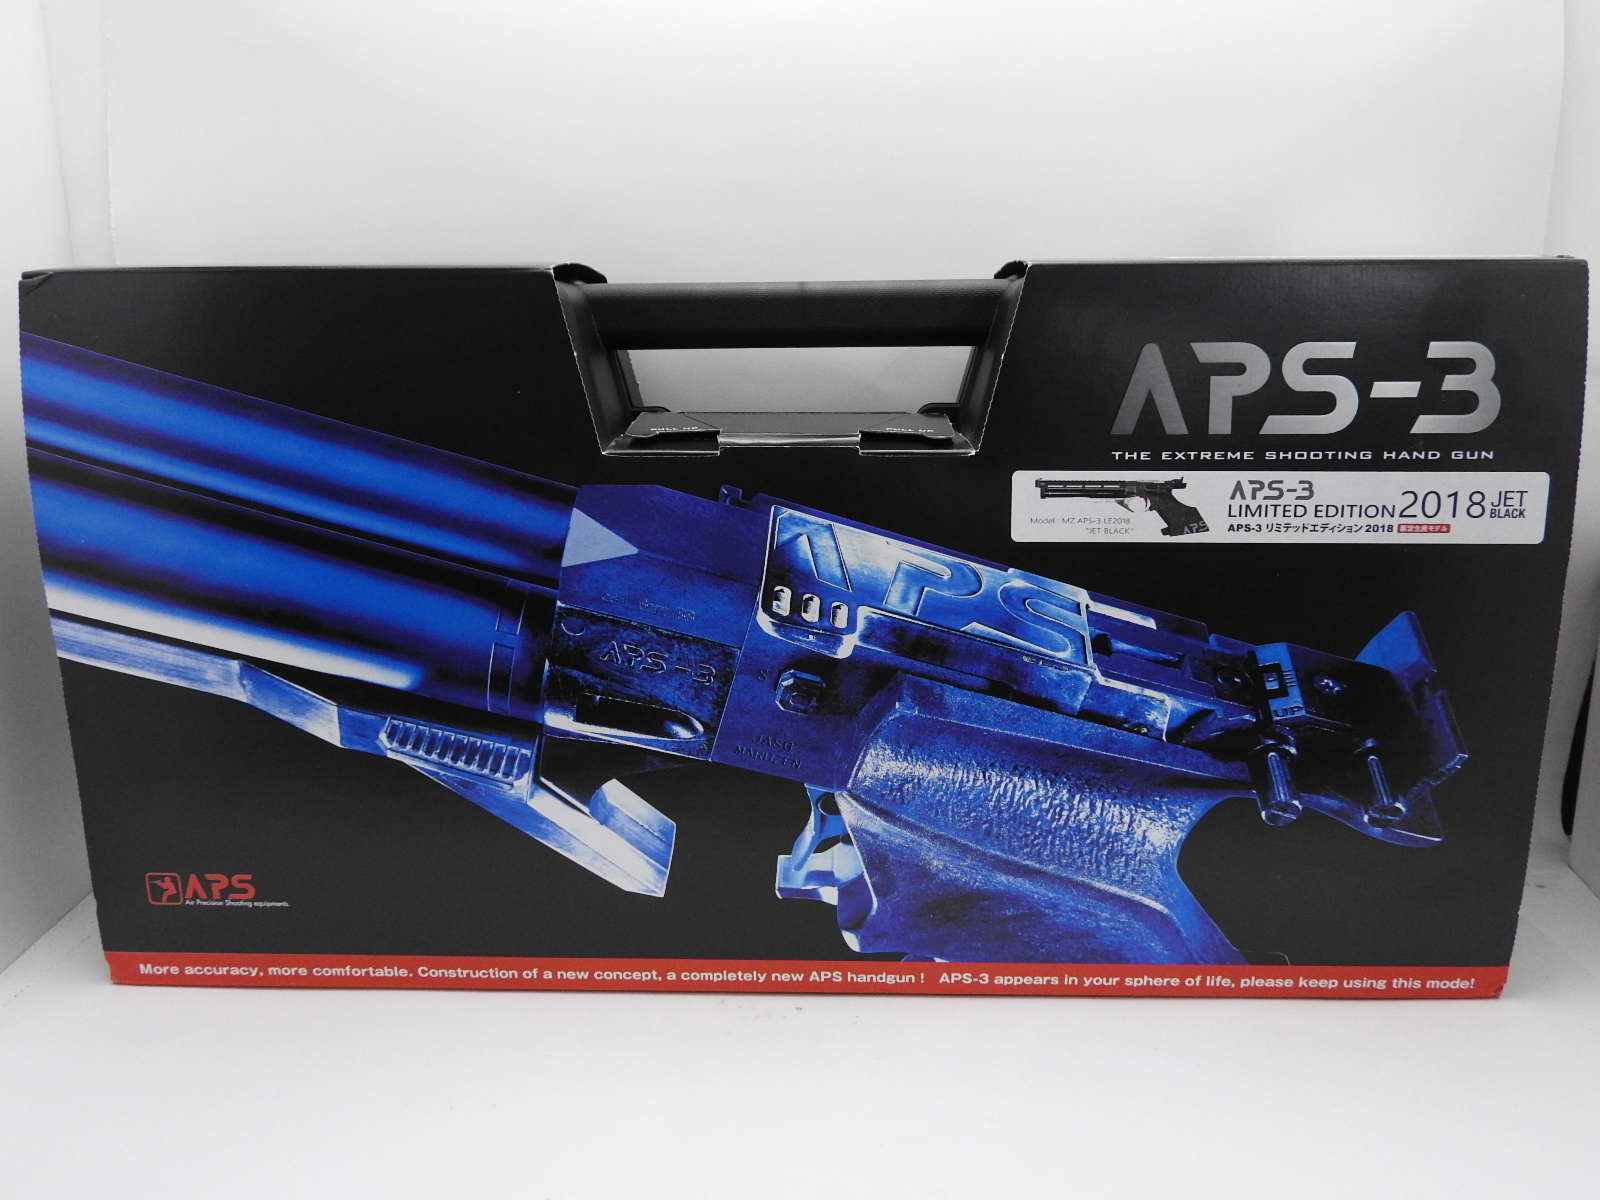 Nonpareil for air gun gun 18 years old or more for the used Maruzen APS-3  2018 APS3 limited edition competition